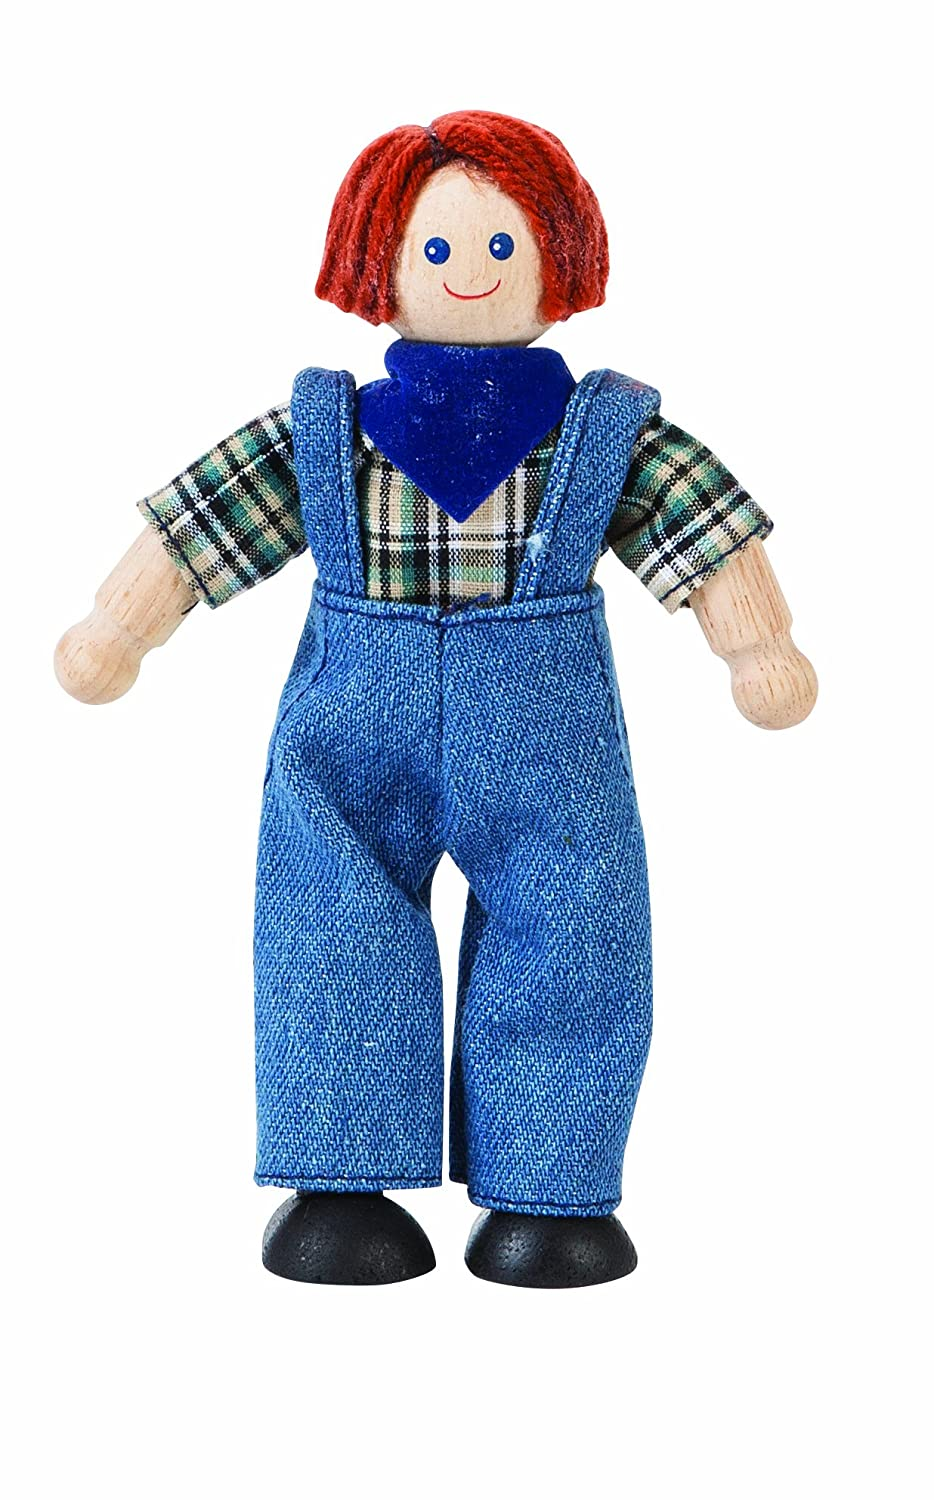 stuffed farmer man toy for Thanksgiving Classroom games for kids